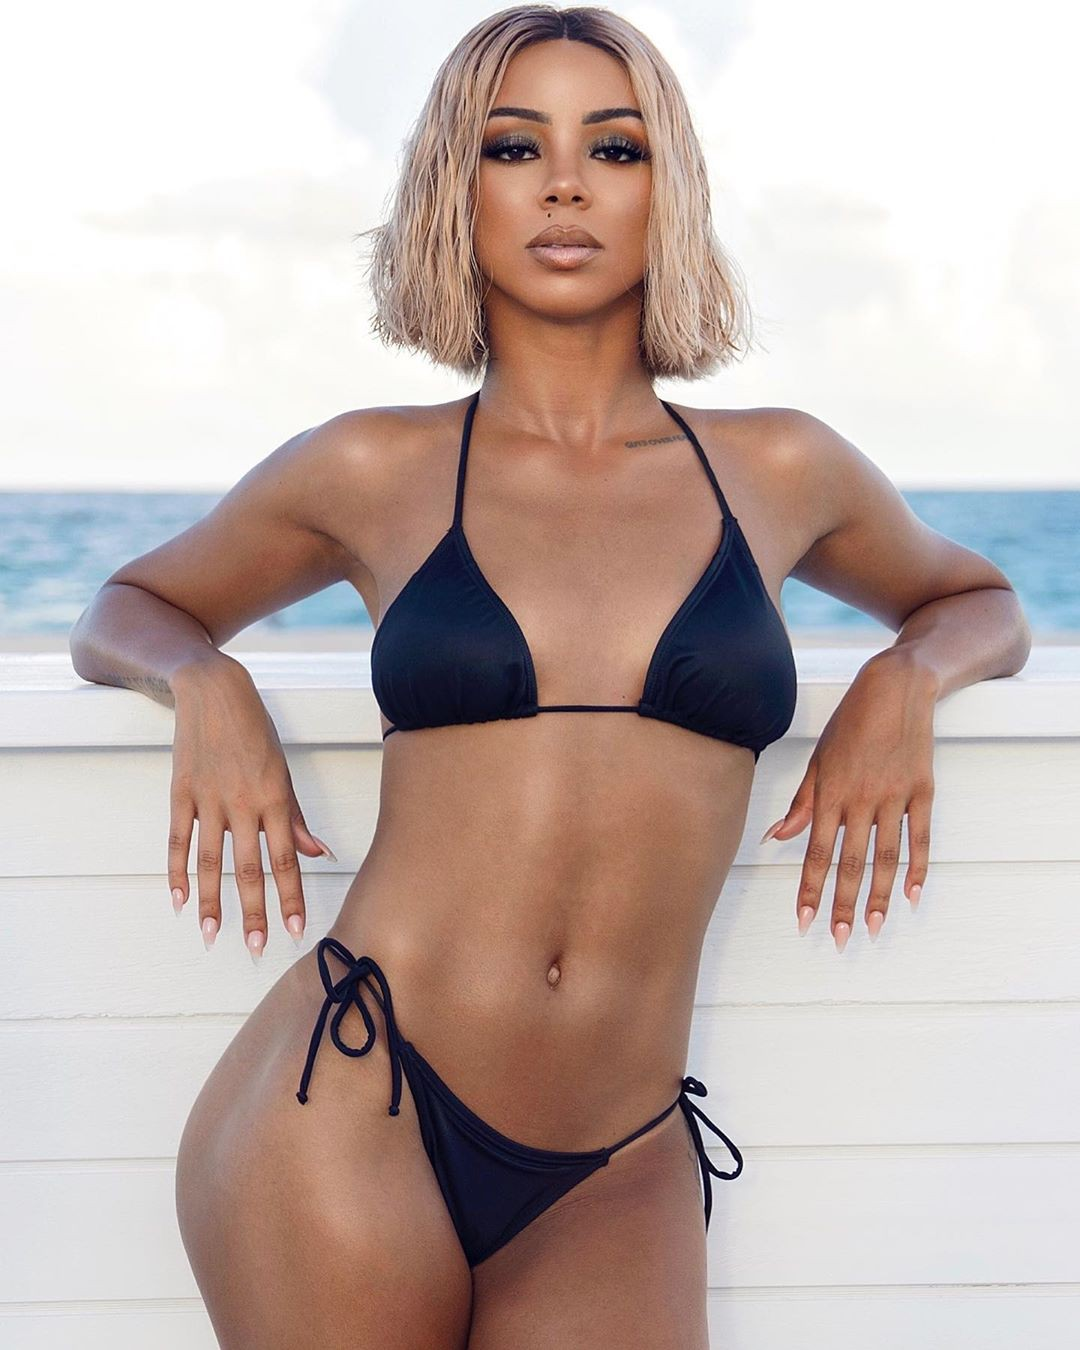 Brittany Renner lingerie, bikini swimsuit top, swimwear outfits for girls